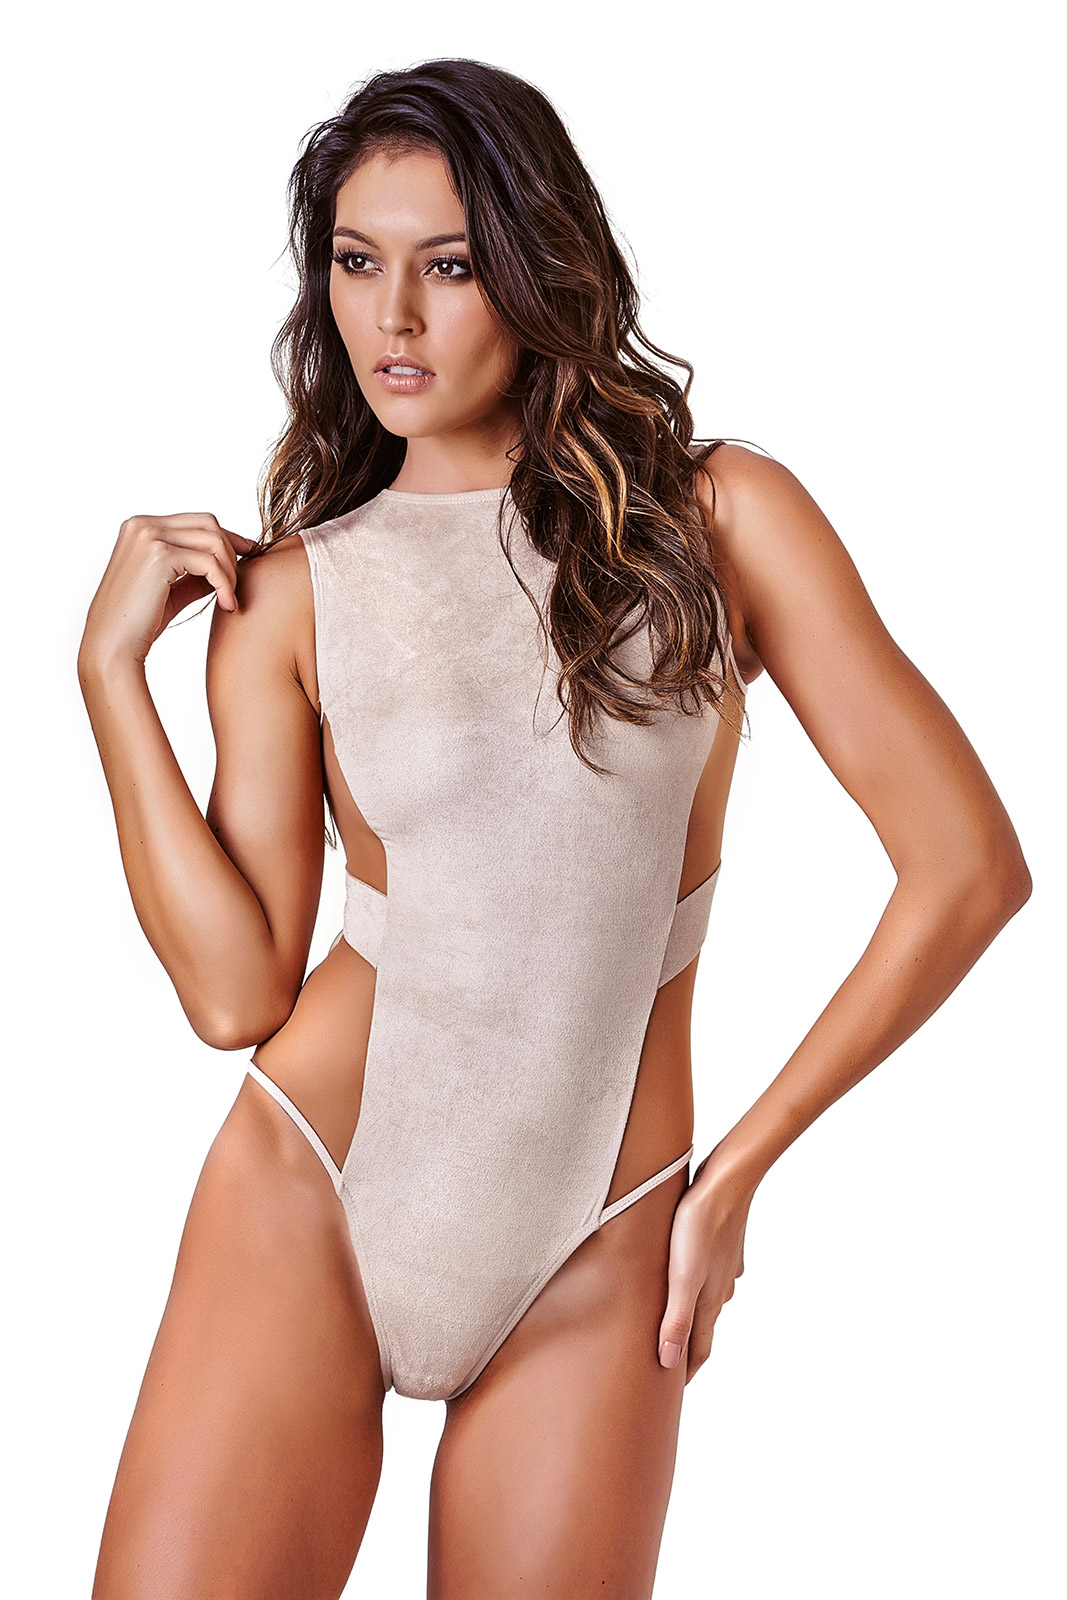 Two-Material Nude Suedette And Transparent Bodysuit - Body -2221